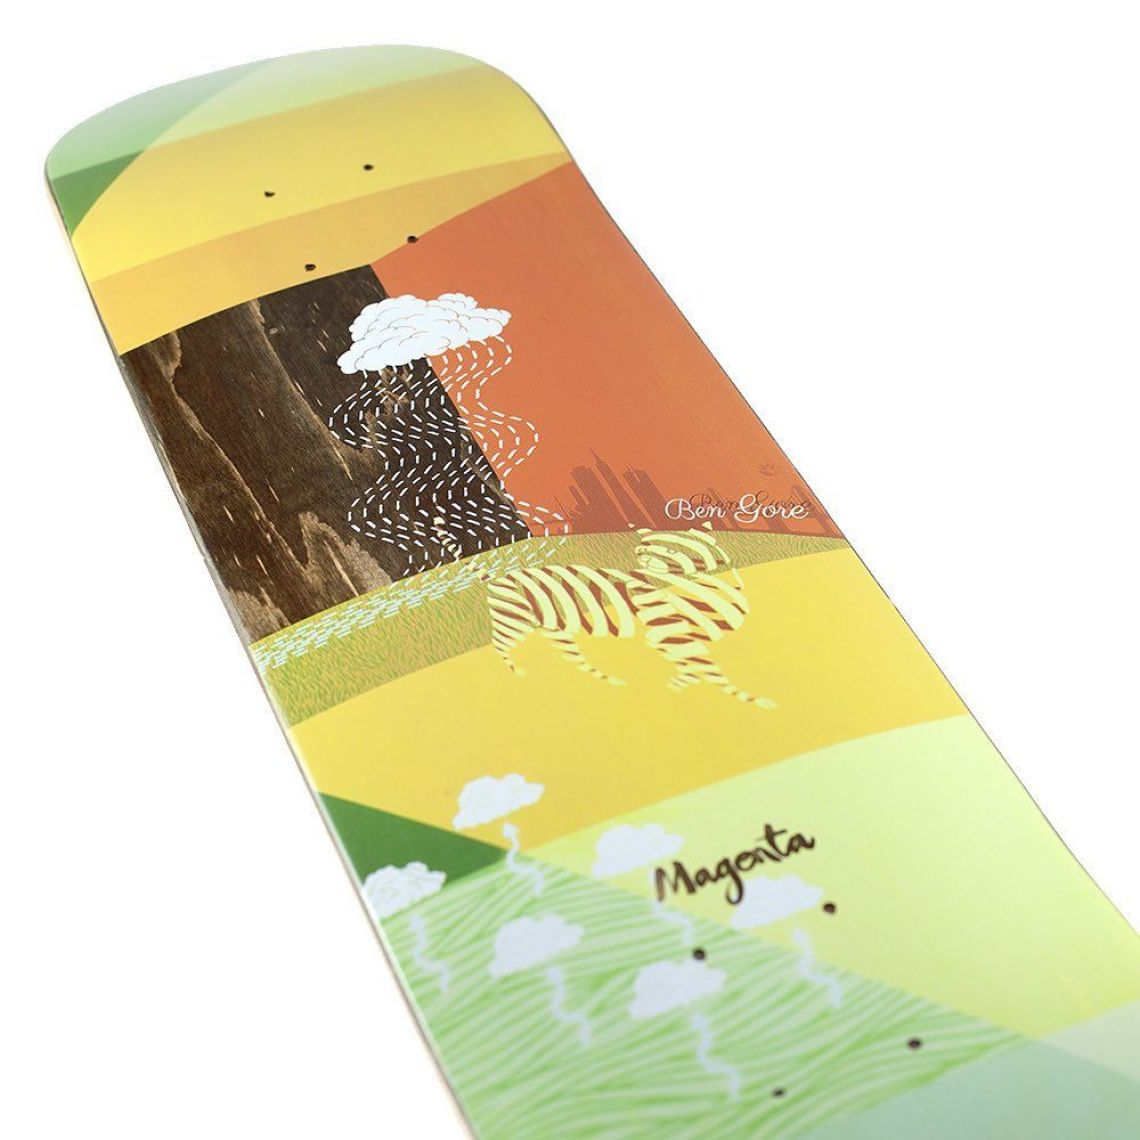 Sleep Board Series By Soy Panday For Magenta Skateboards 7